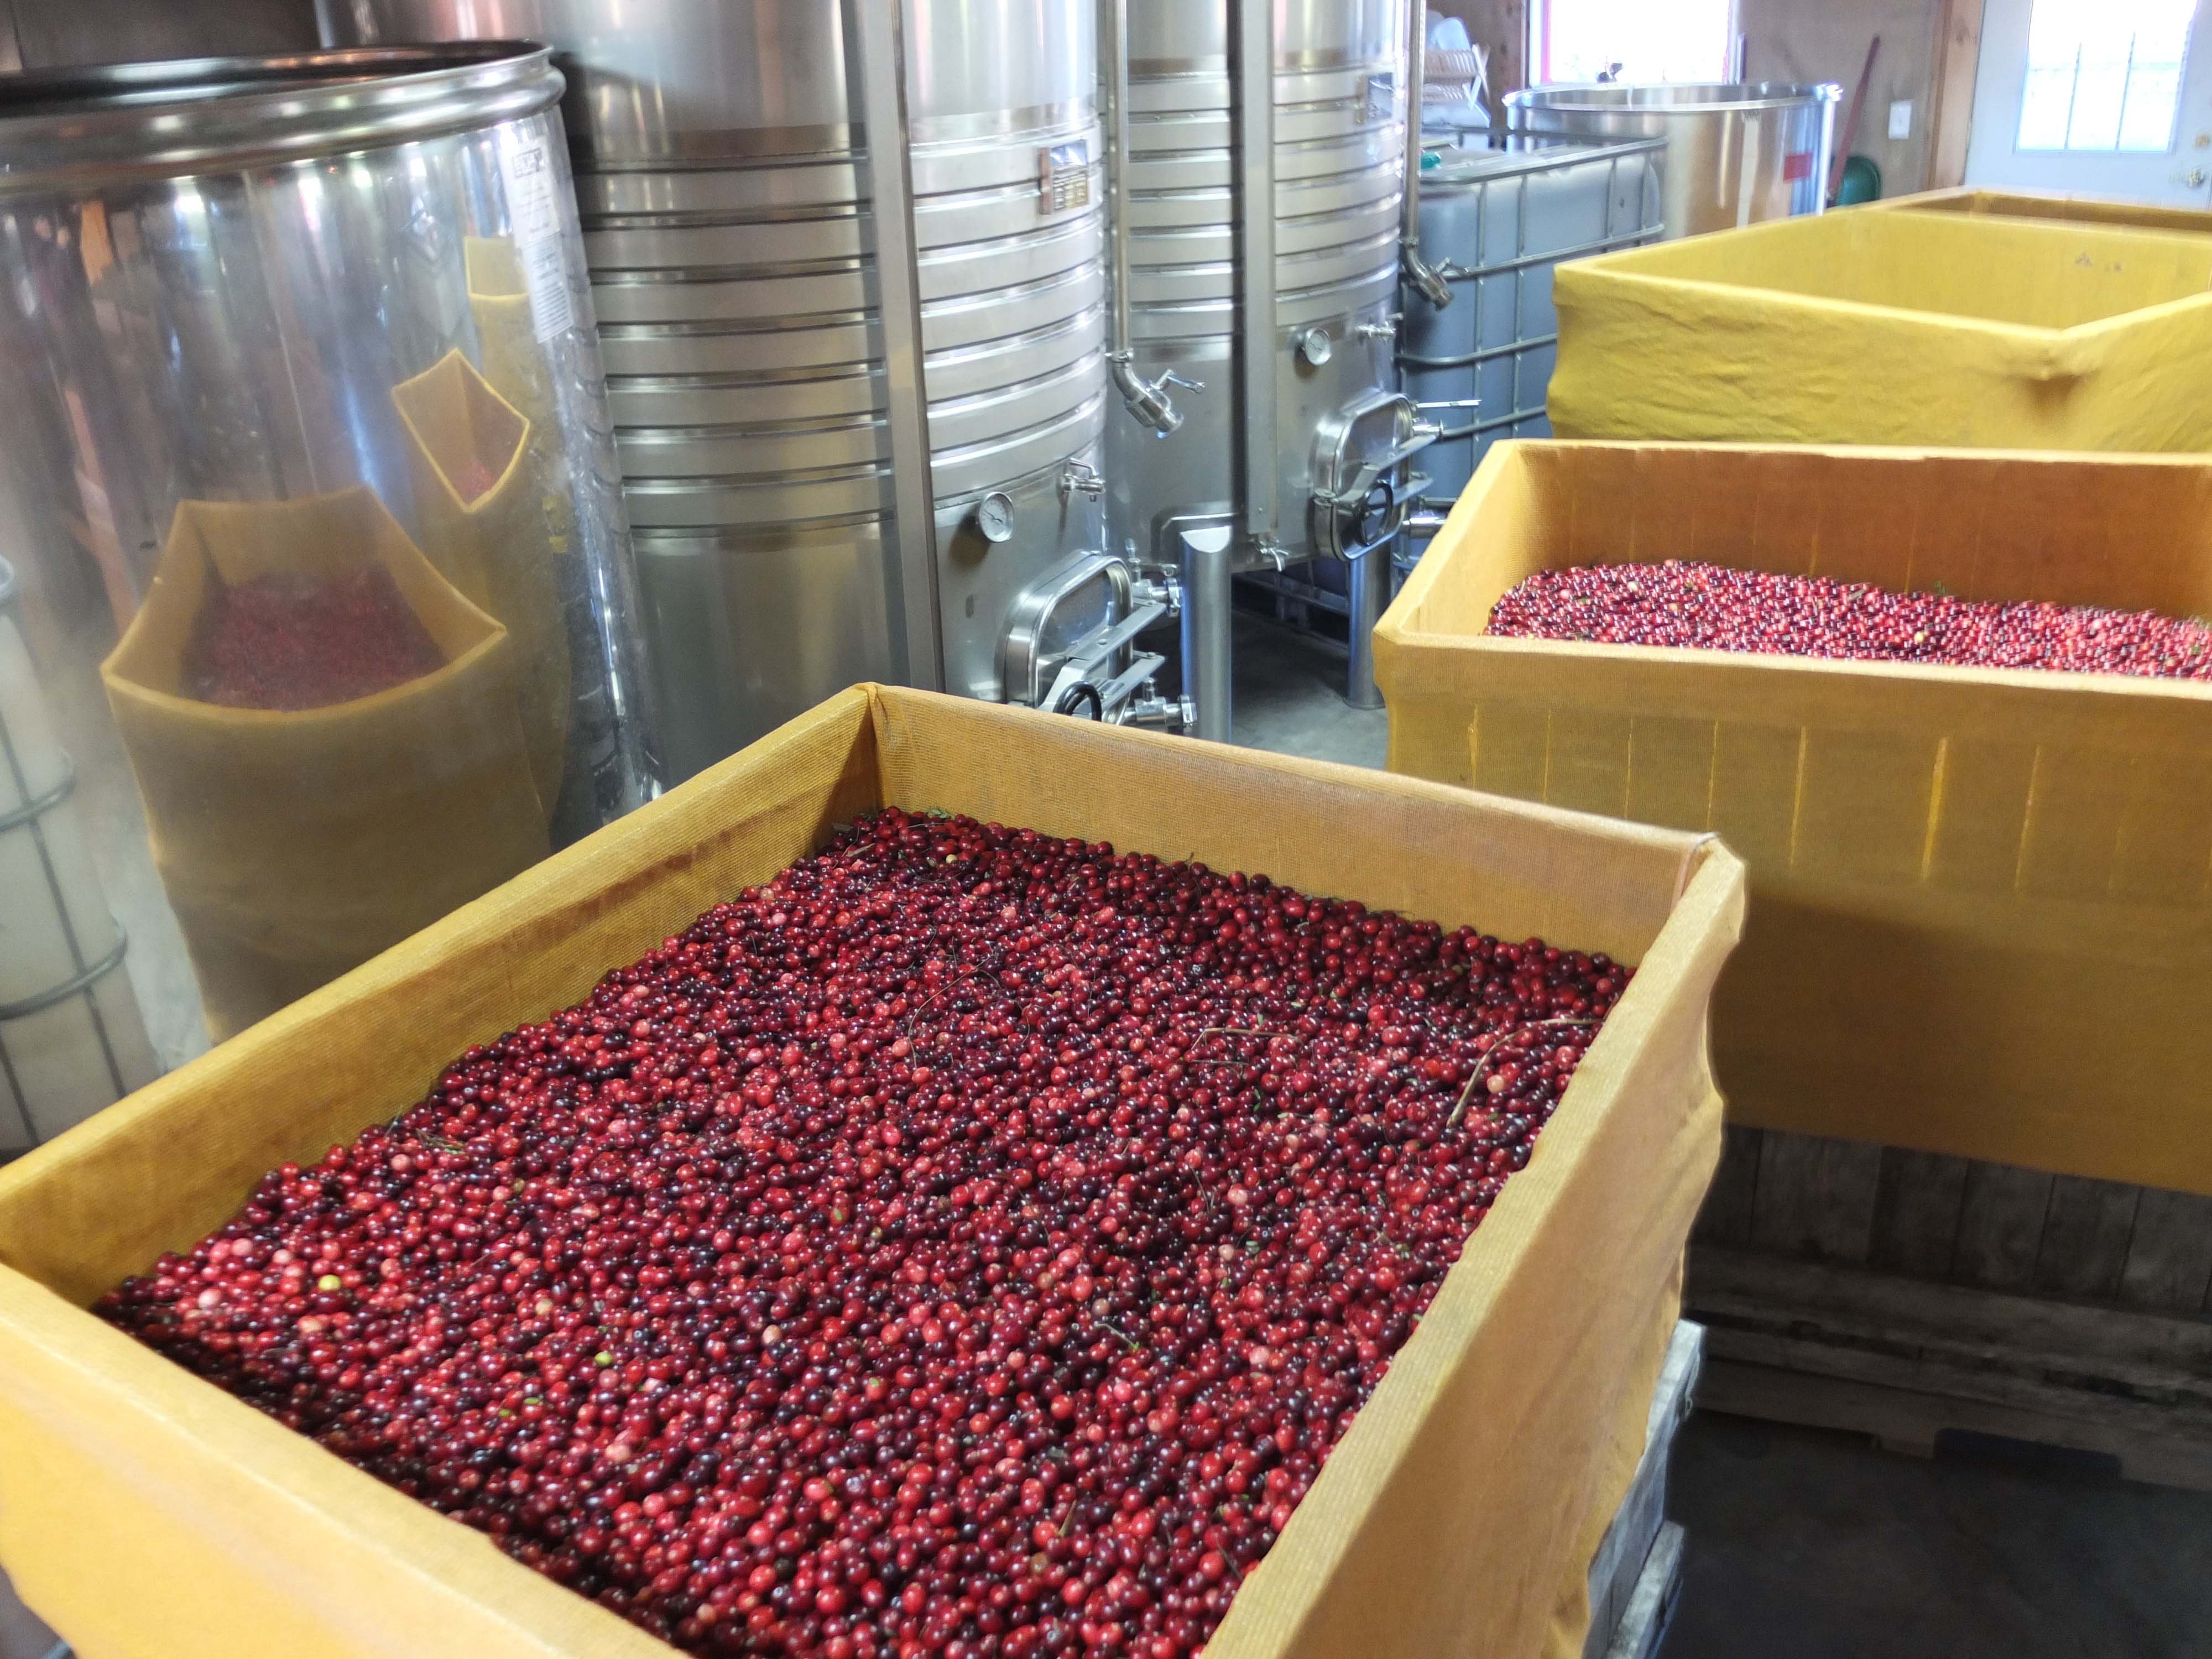 Maine cranberries waiting to be crushed.